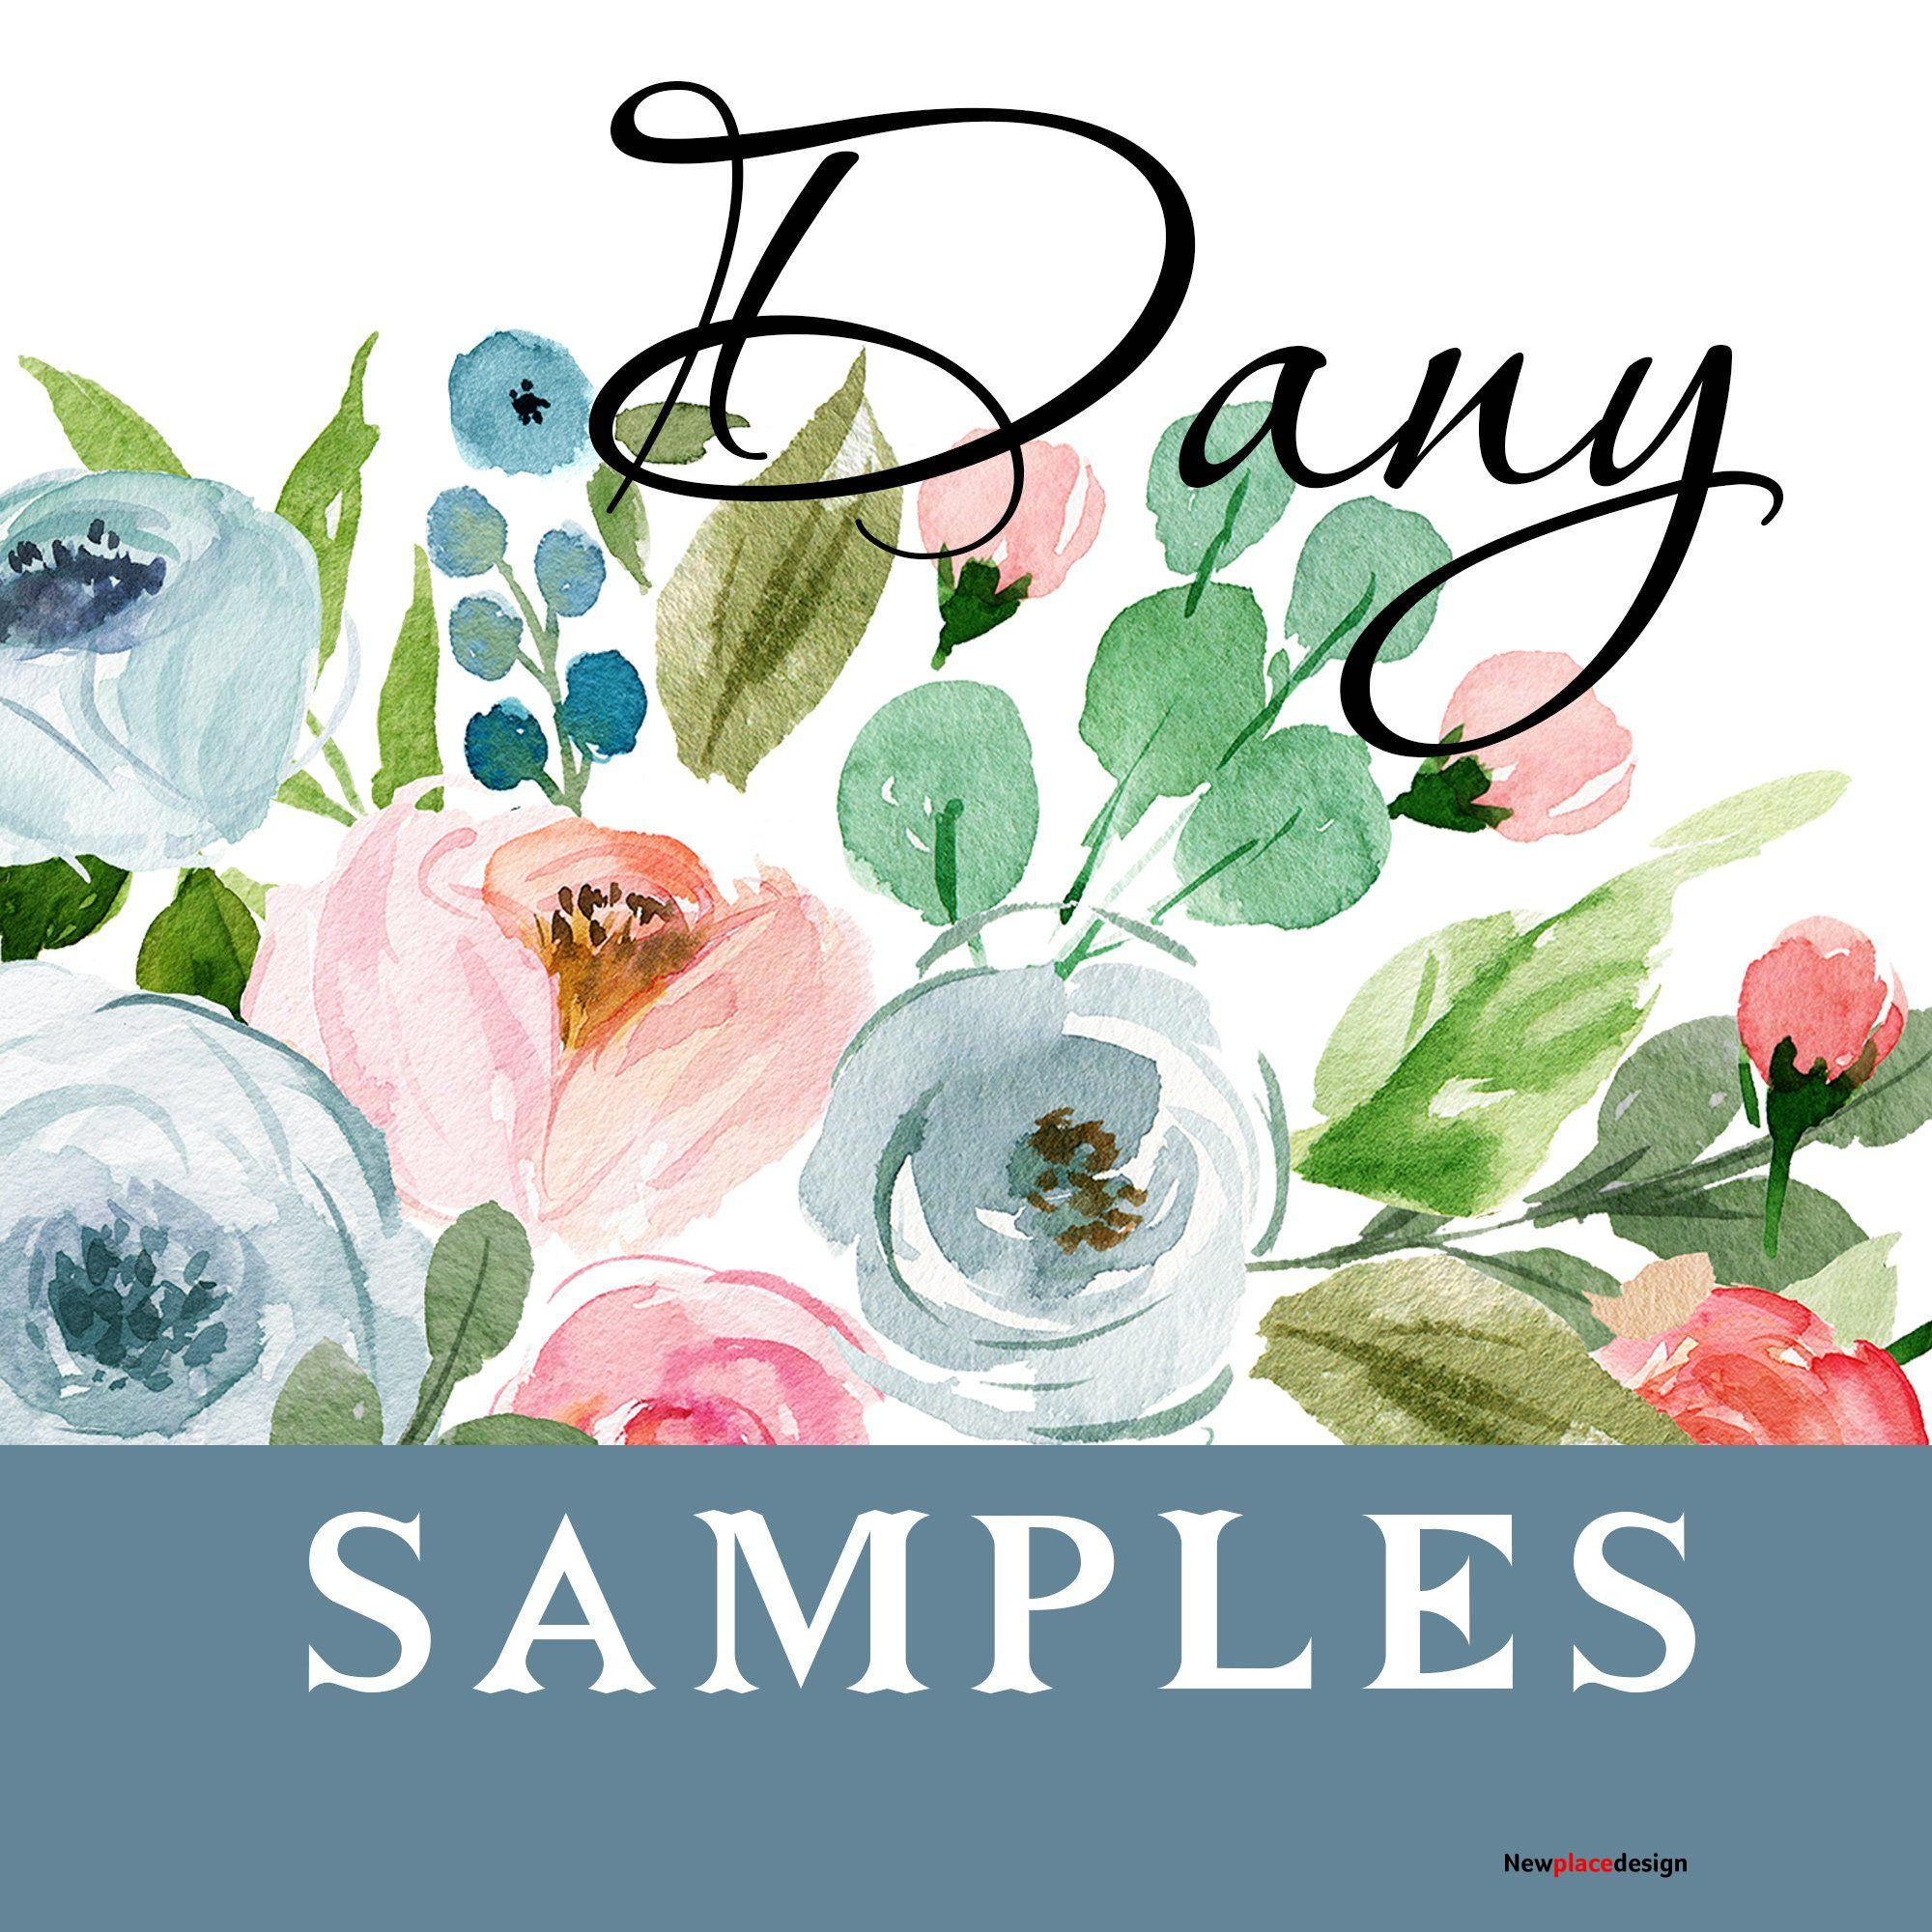 SAMPLES DANY Watercolor Wall Decals - Border Frame